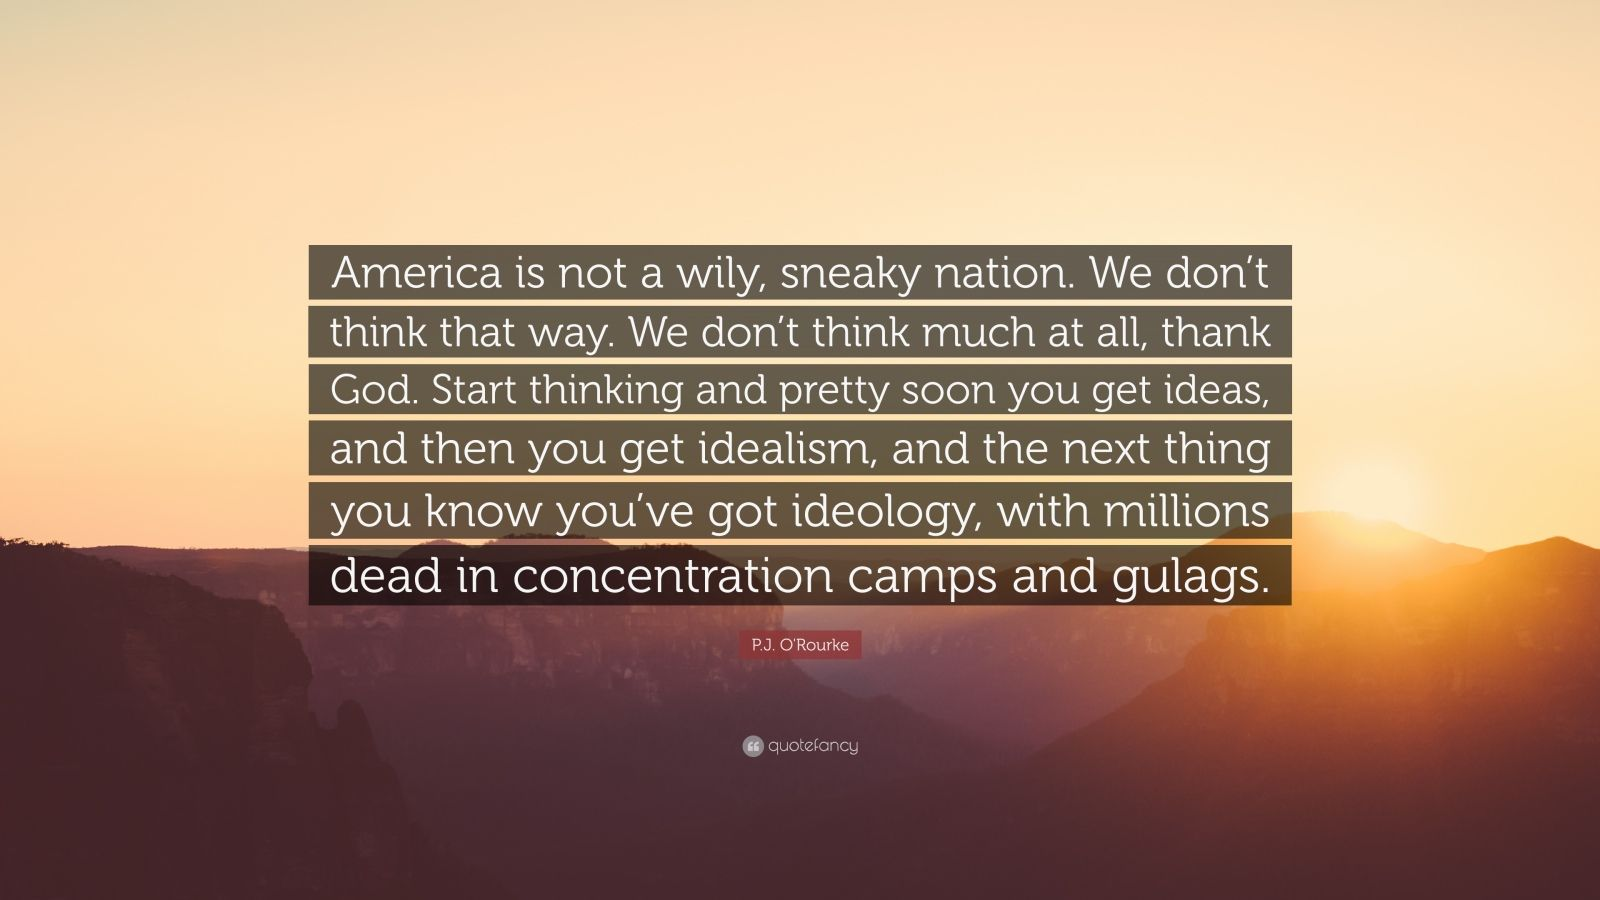 """P.J. O'Rourke Quote: """"America is not a wily, sneaky nation. We don't think that way. We don't think much at all, thank God. Start thinking and pretty soon you get ideas, and then you get idealism, and the next thing you know you've got ideology, with millions dead in concentration camps and gulags."""""""